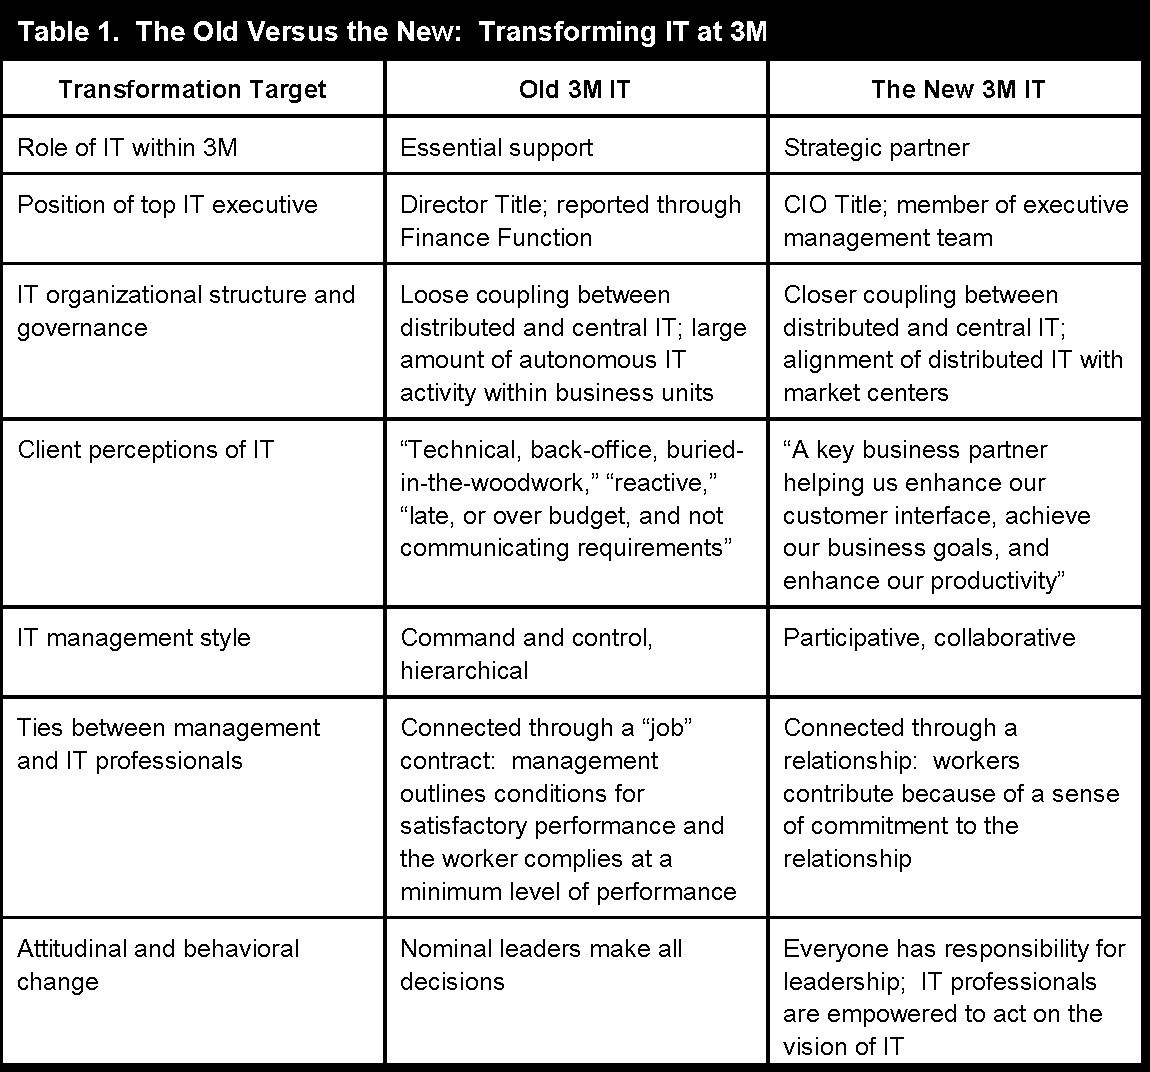 Table 1 from ALIGNING THE IT HUMAN RESOURCE WITH BUSINESS